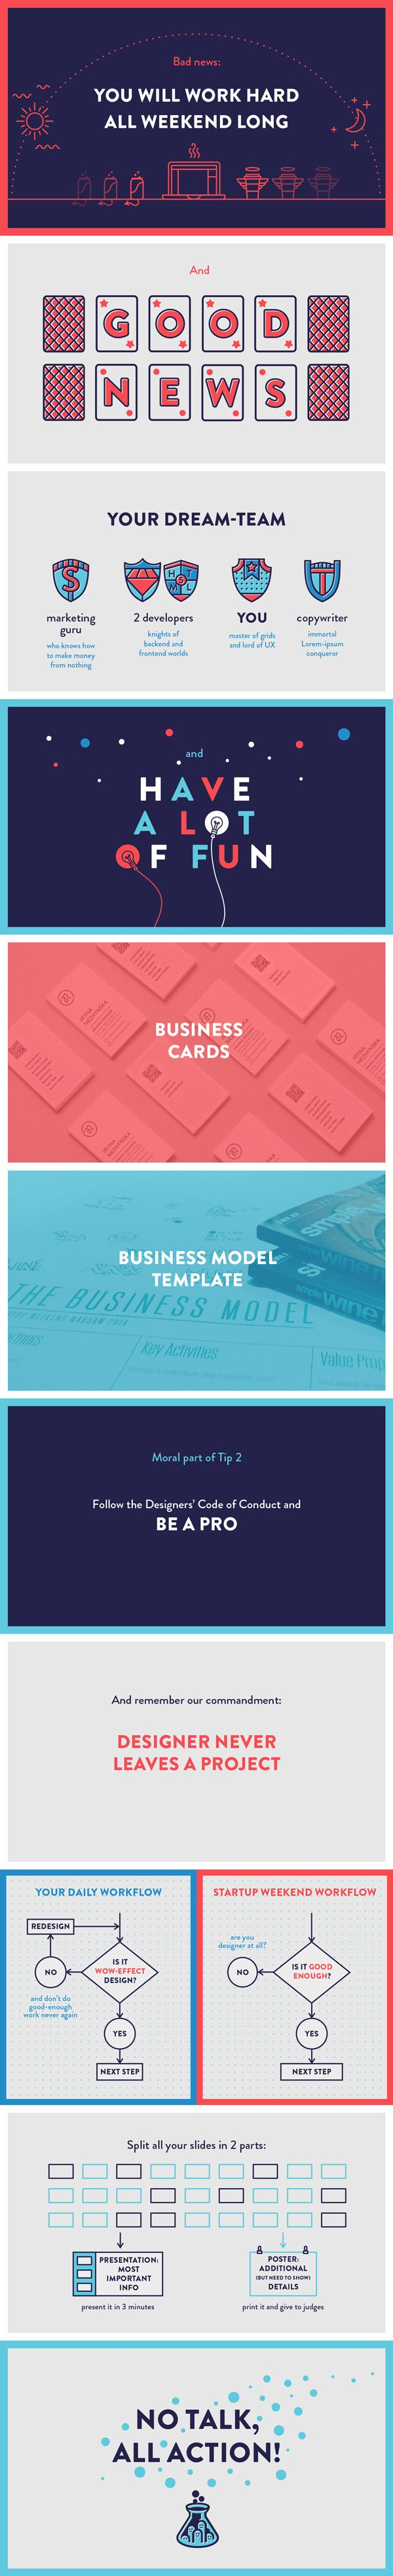 best ideas about simple powerpoint templates the designers guide to startup weekend powerpoint presentation design by iryna nezhynska via behance i love the simple colors and flat shapes